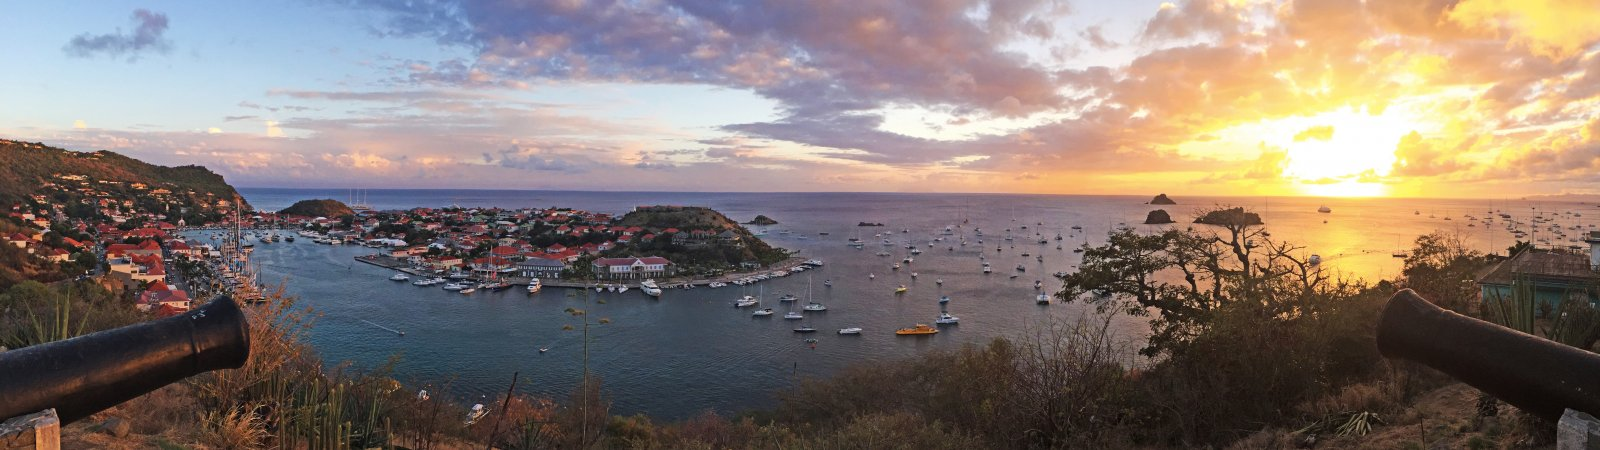 Inspected Vacation Villas in St. Barts for Discerning Travelers